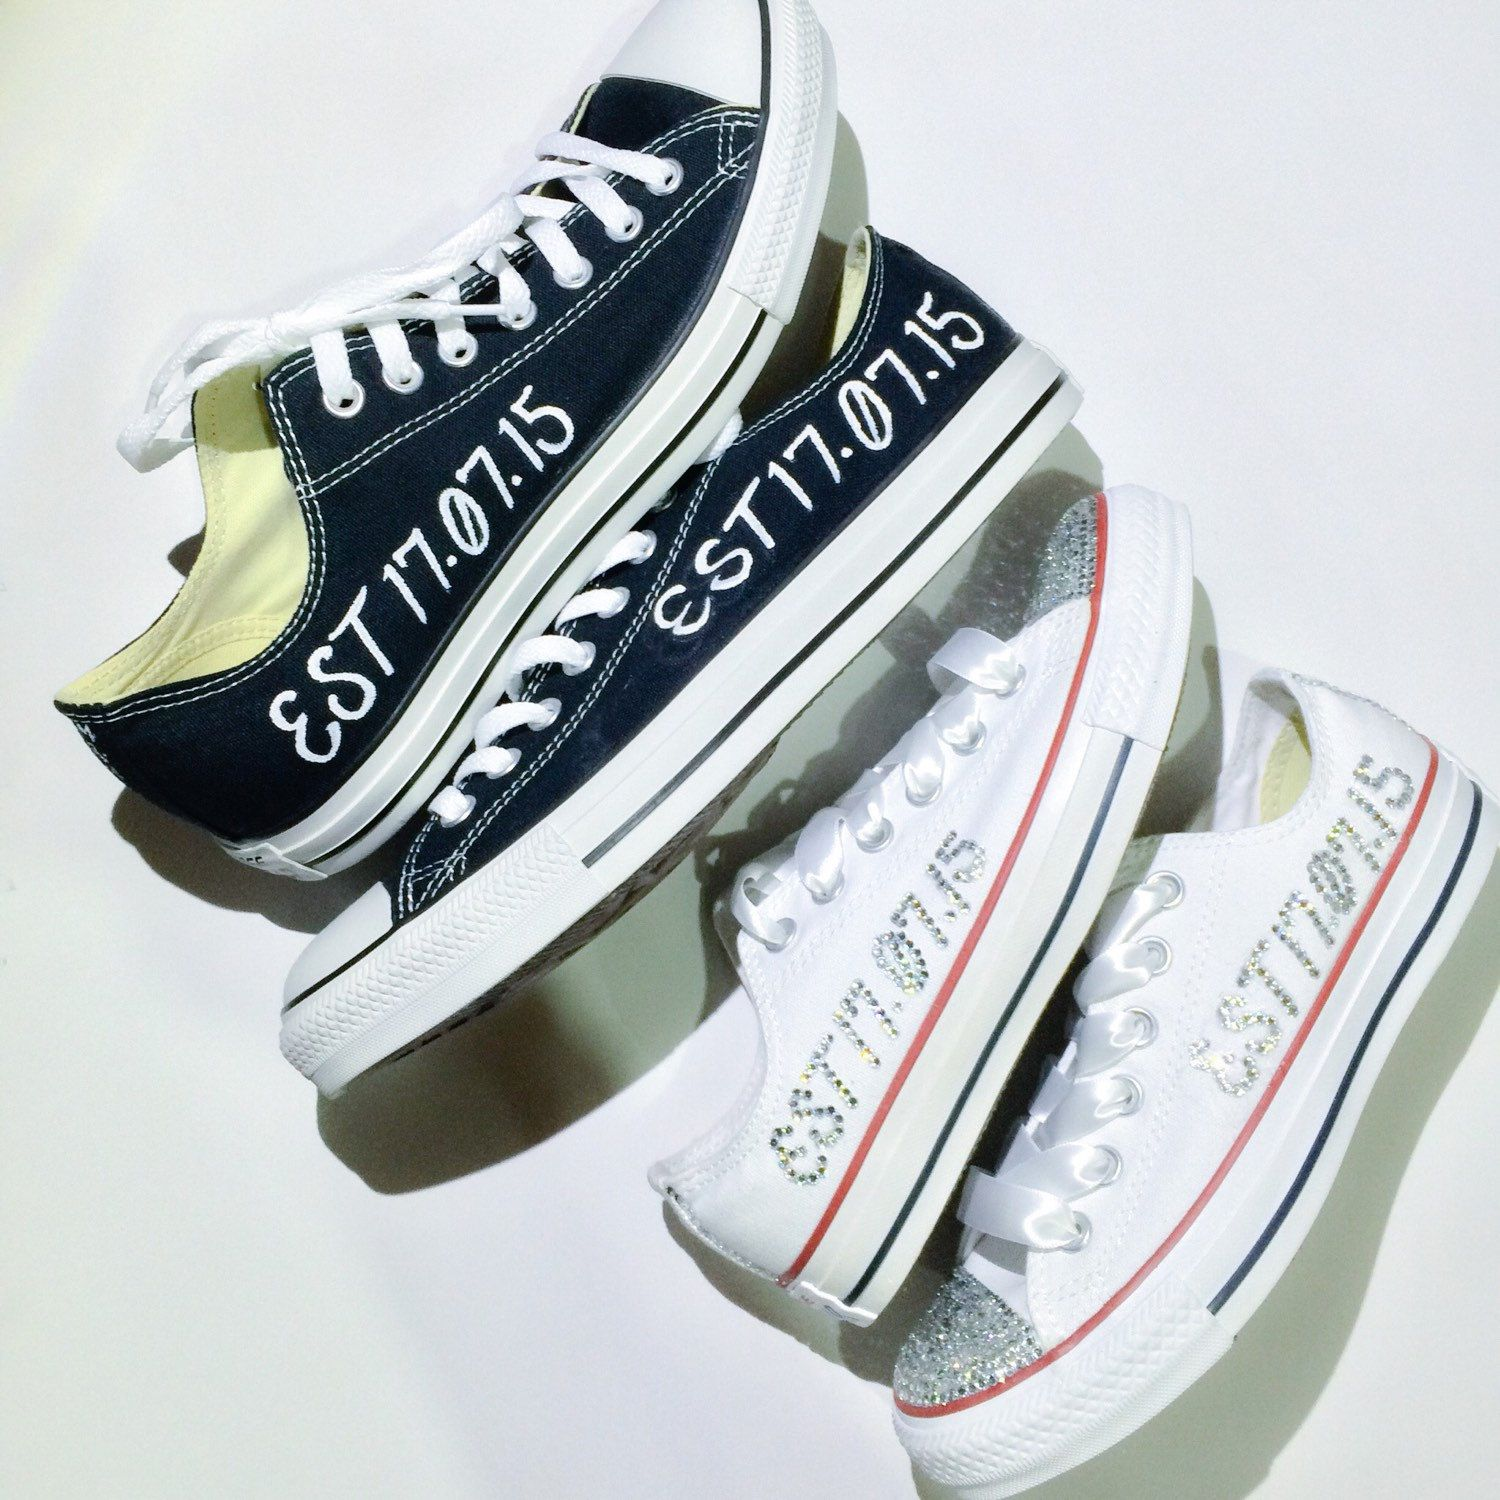 05c42d027fb Wedding Converse Bride and Groom Custom Painted Converse Shoes WITHOUT Mini  Veils by IntellexualDesign on Etsy